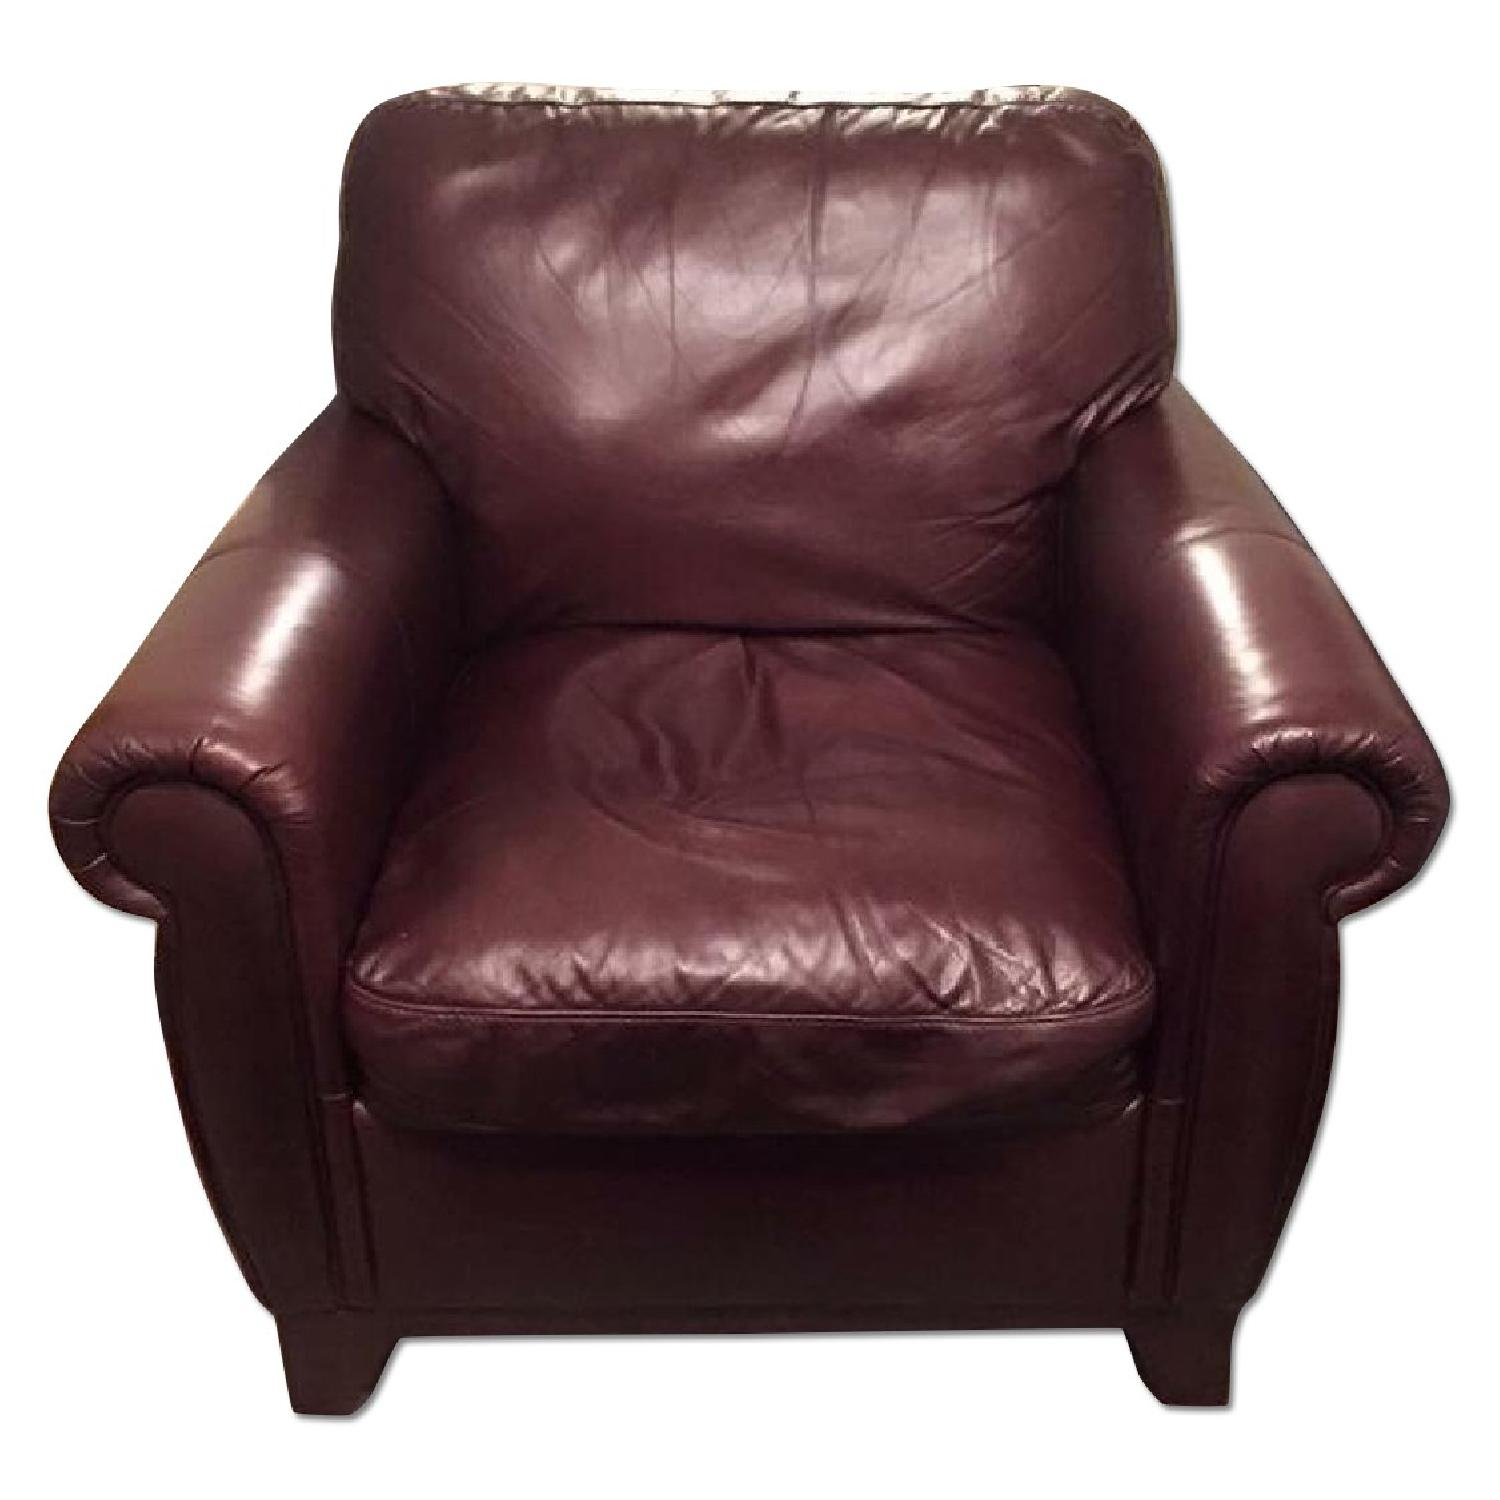 Raymour & Flanigan Jackson Leather Arm Chair - image-0